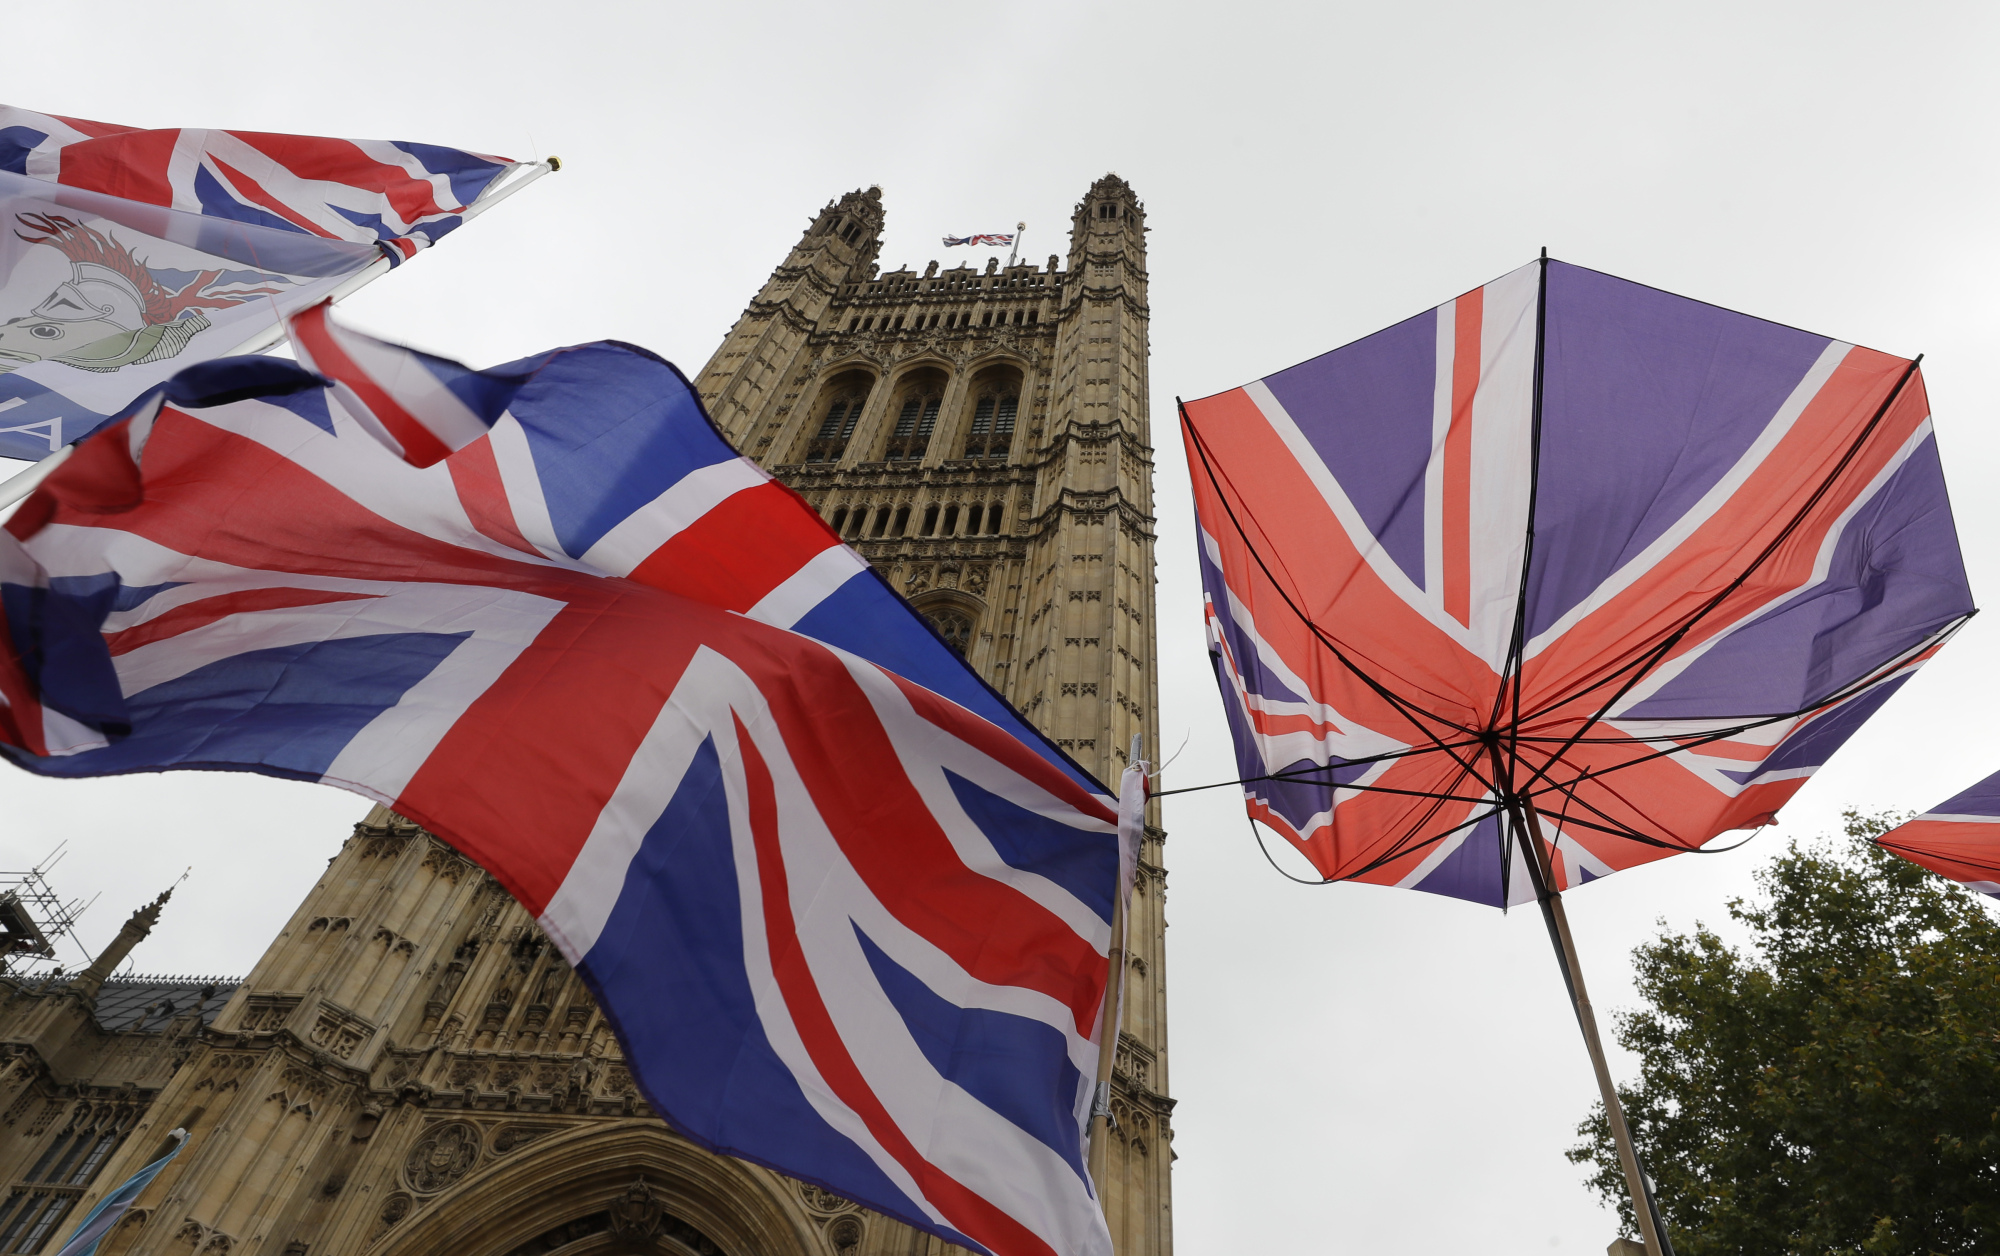 Union flags and an umbrella tied to railings are seen in front of Parliament in London on Friday. | AP